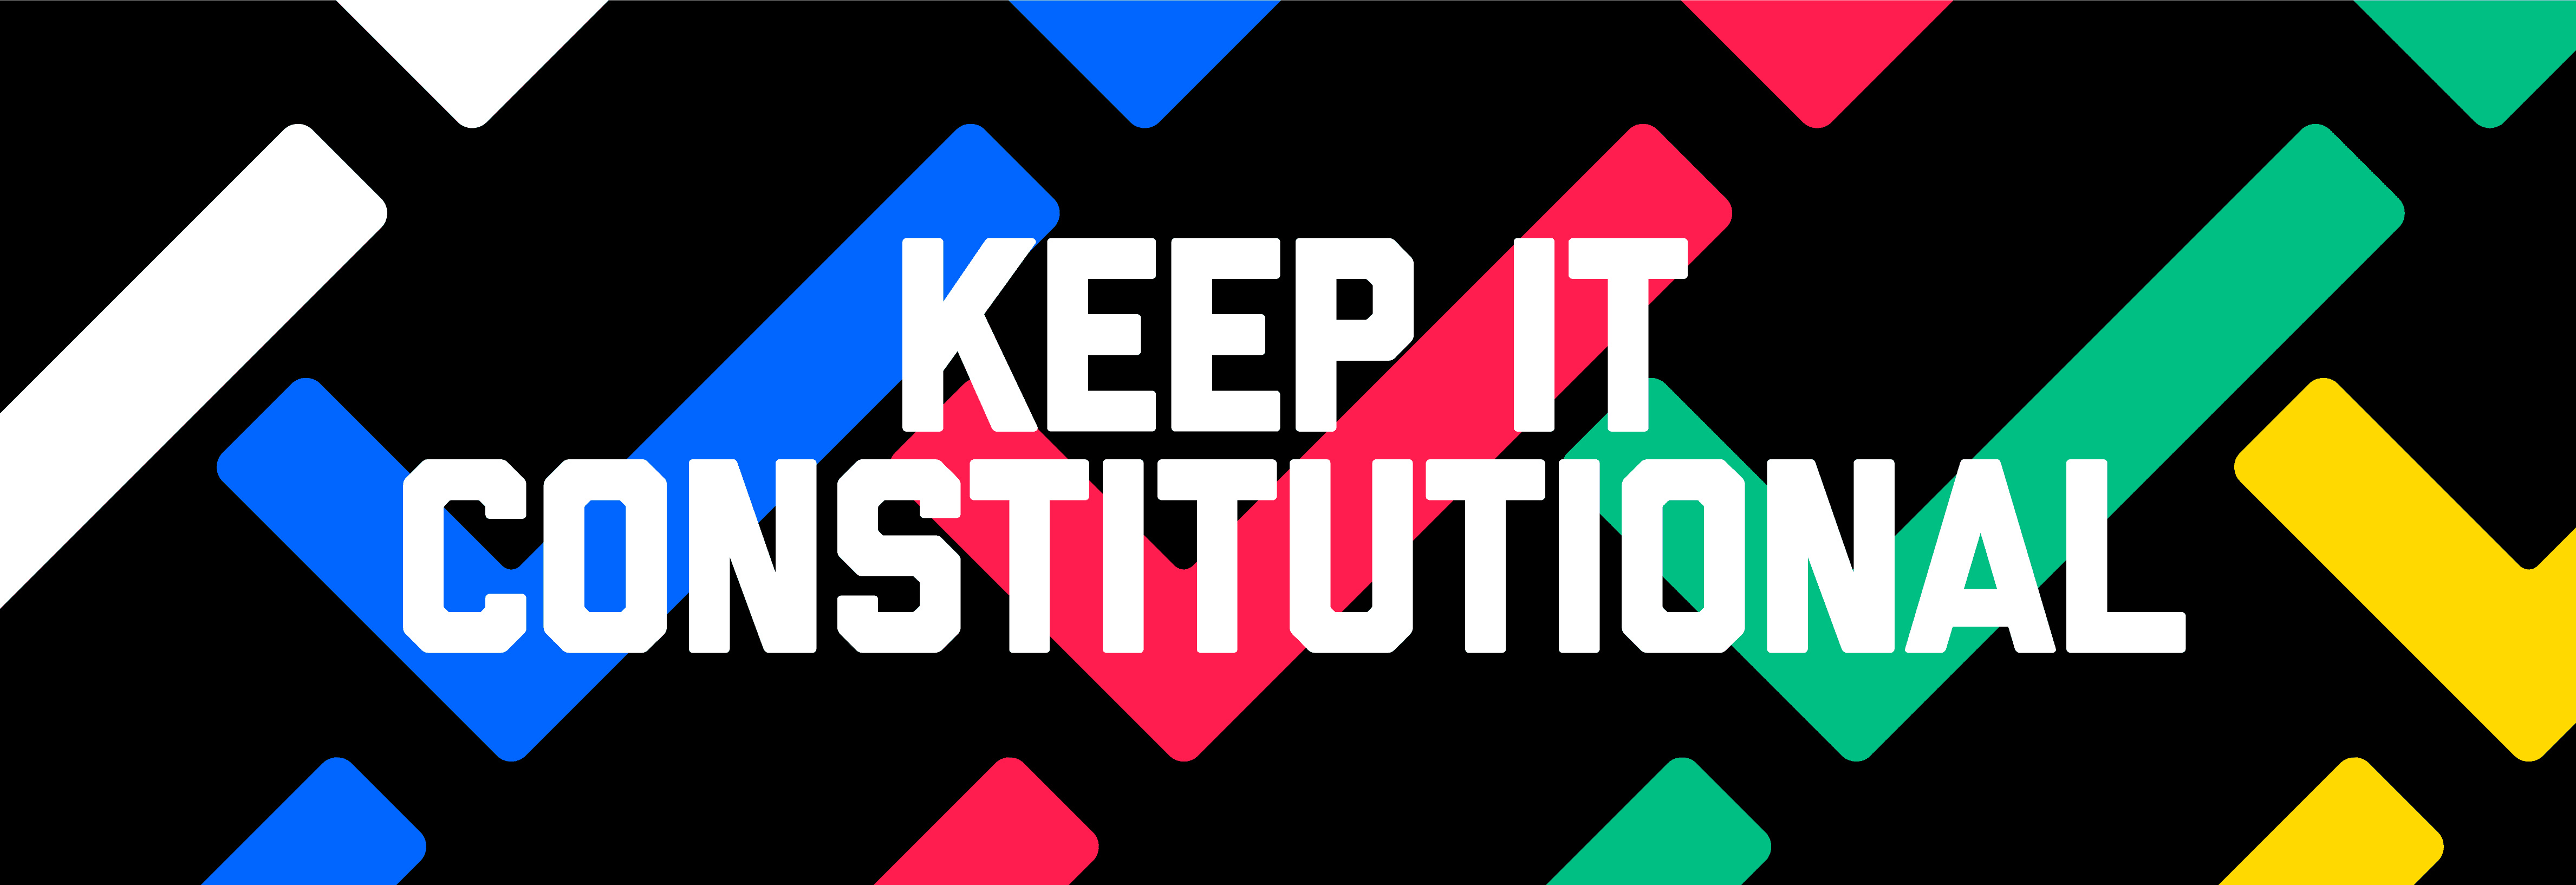 Keep It Constitutional